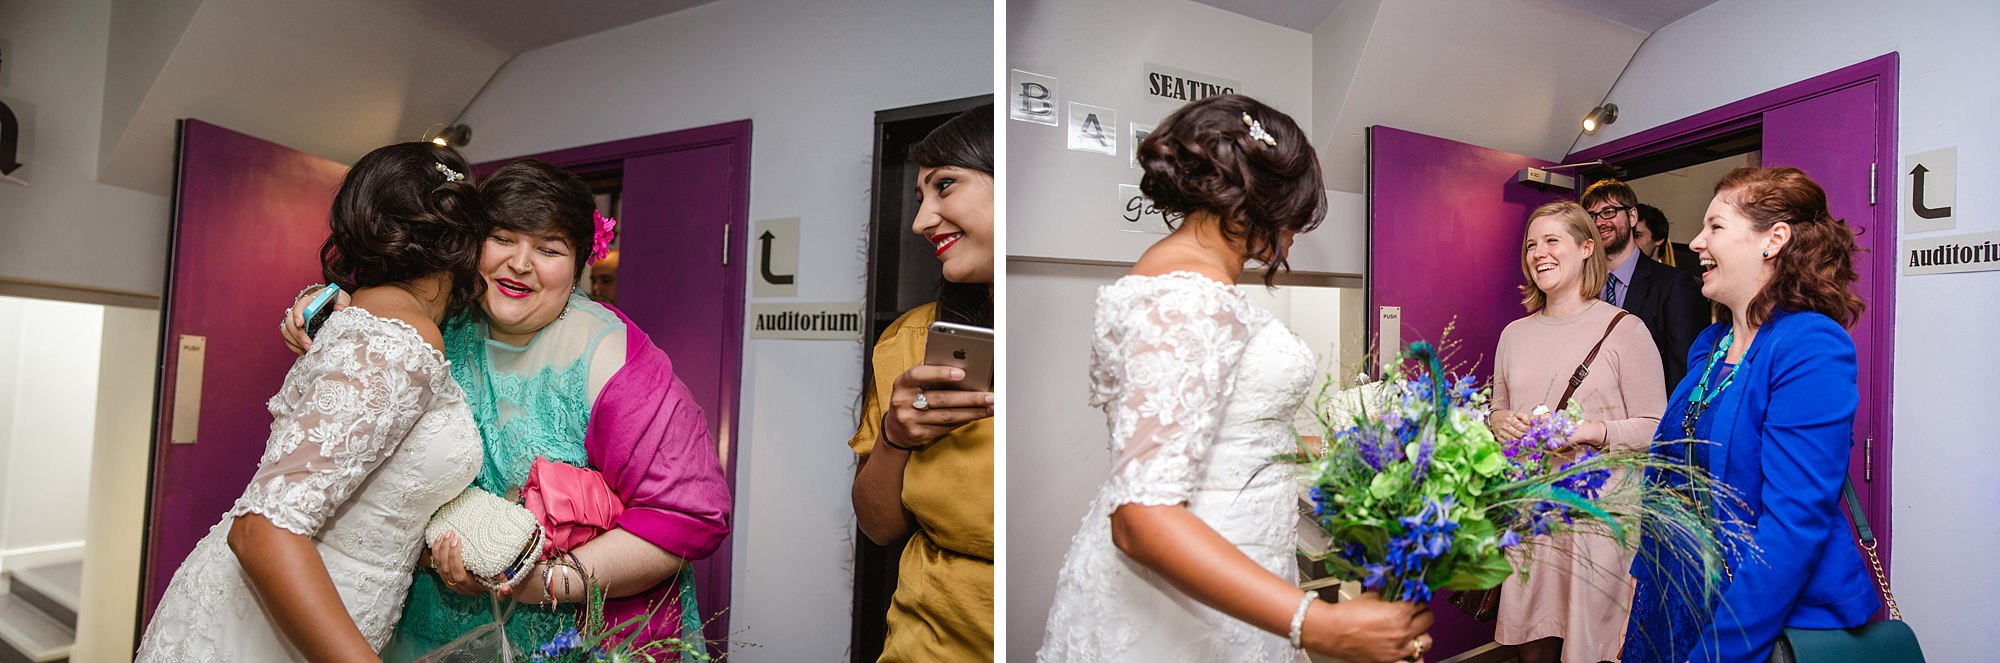 Paradise by way of Kensal Green wedding bride greets guests